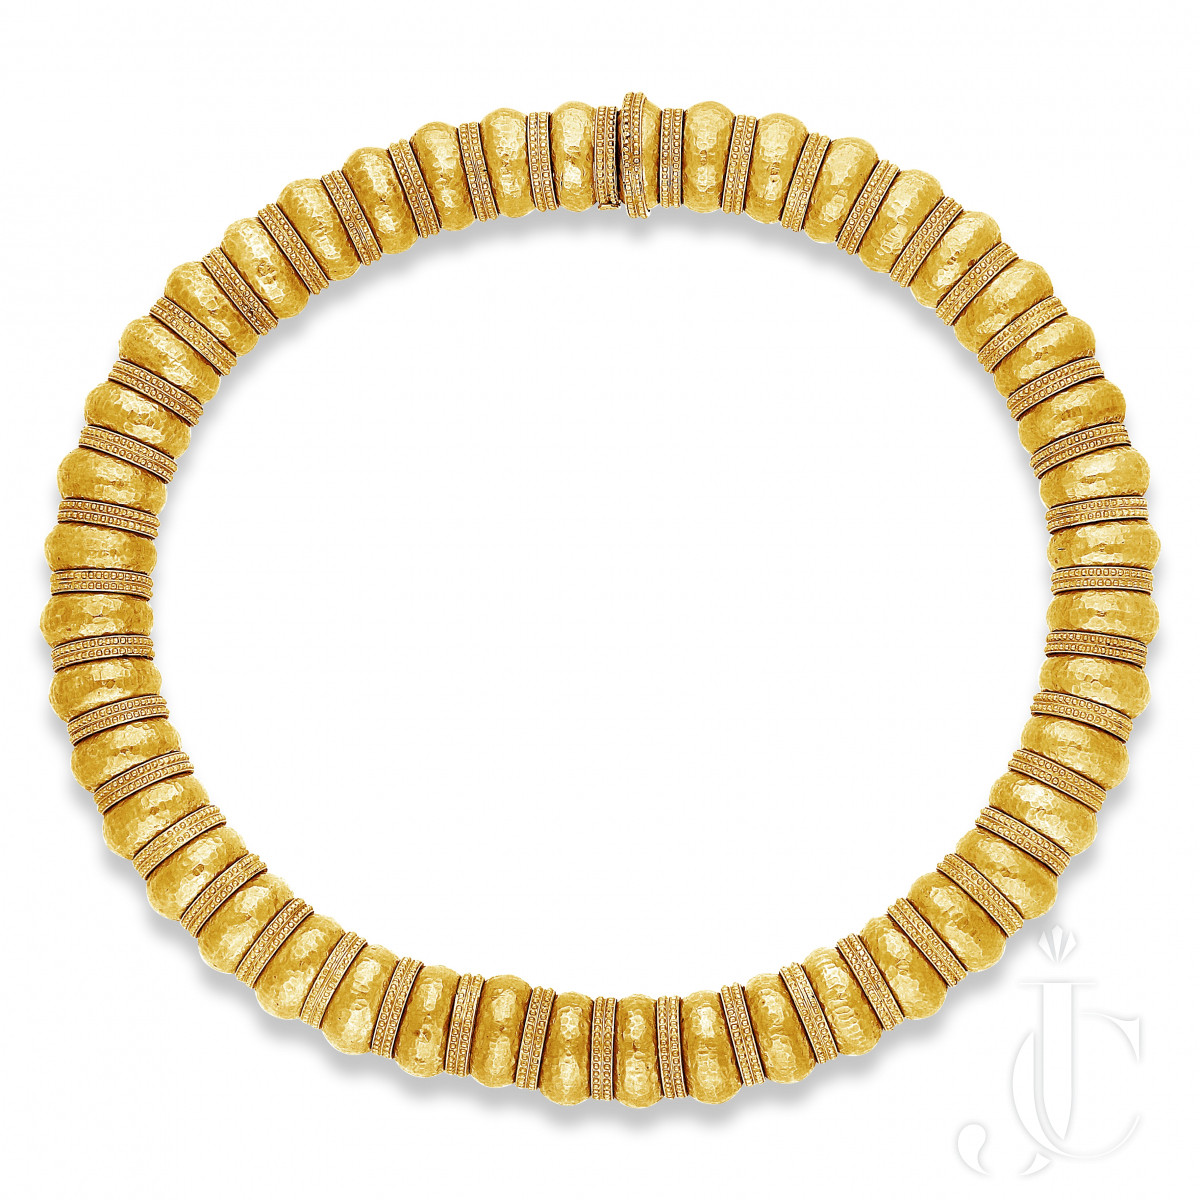 Lalaounis- Really Bold 22k yg 240grms Bead Necklace from